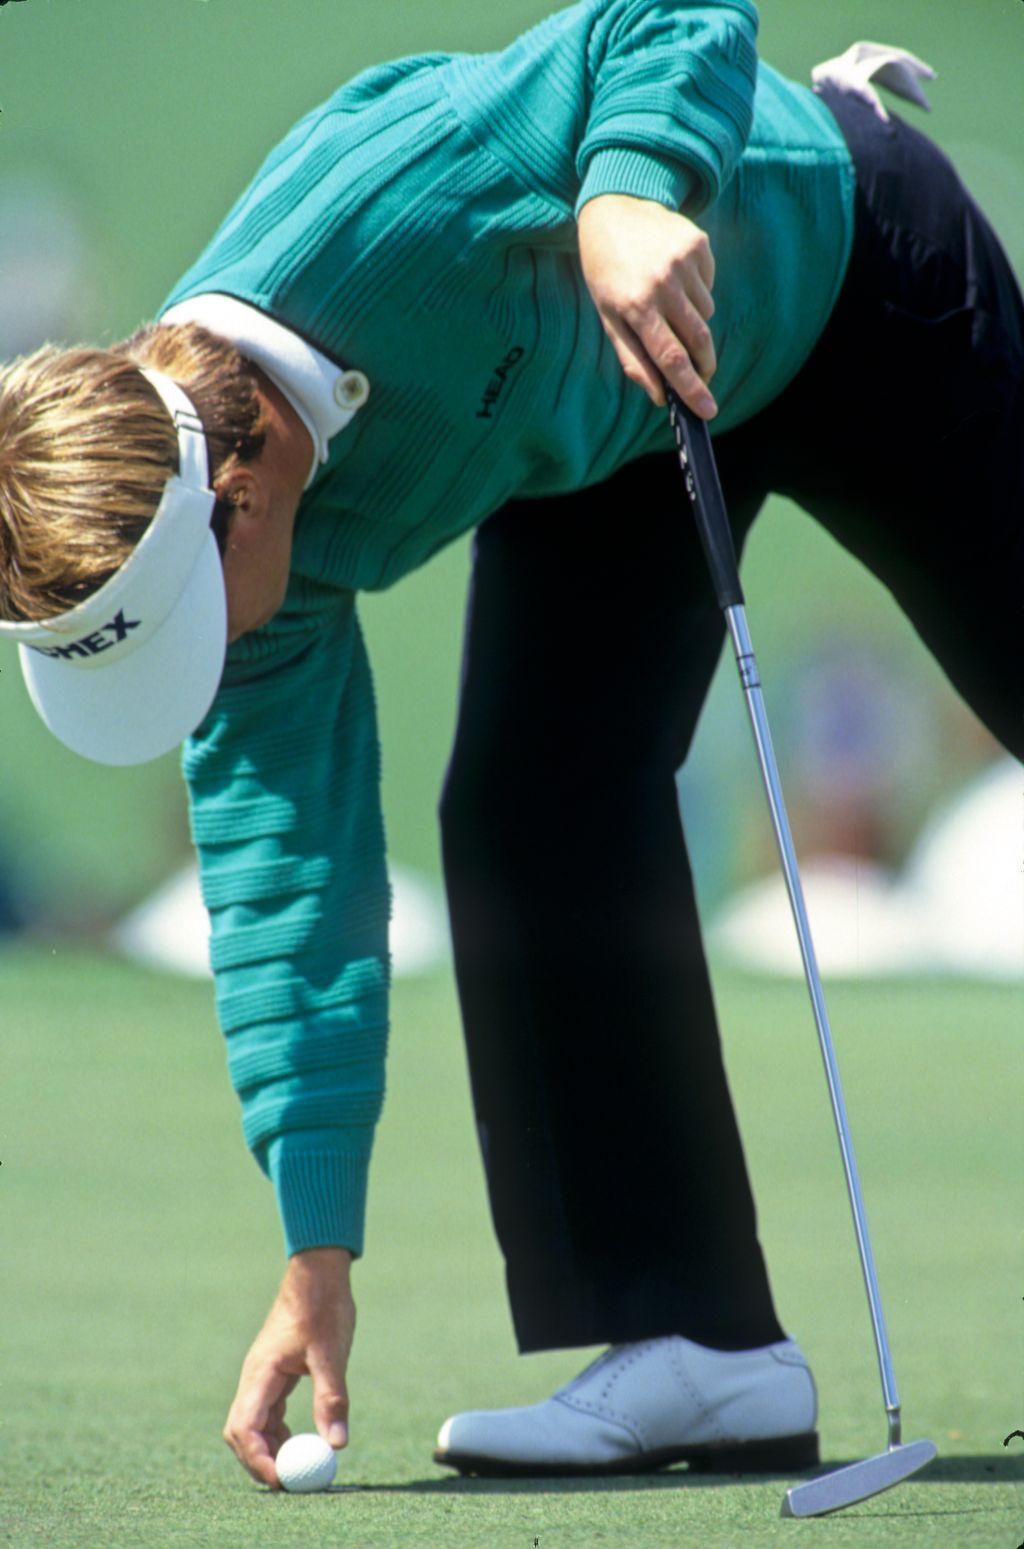 Jeff Sluman replacing his ball on the green during the 1989 Masters